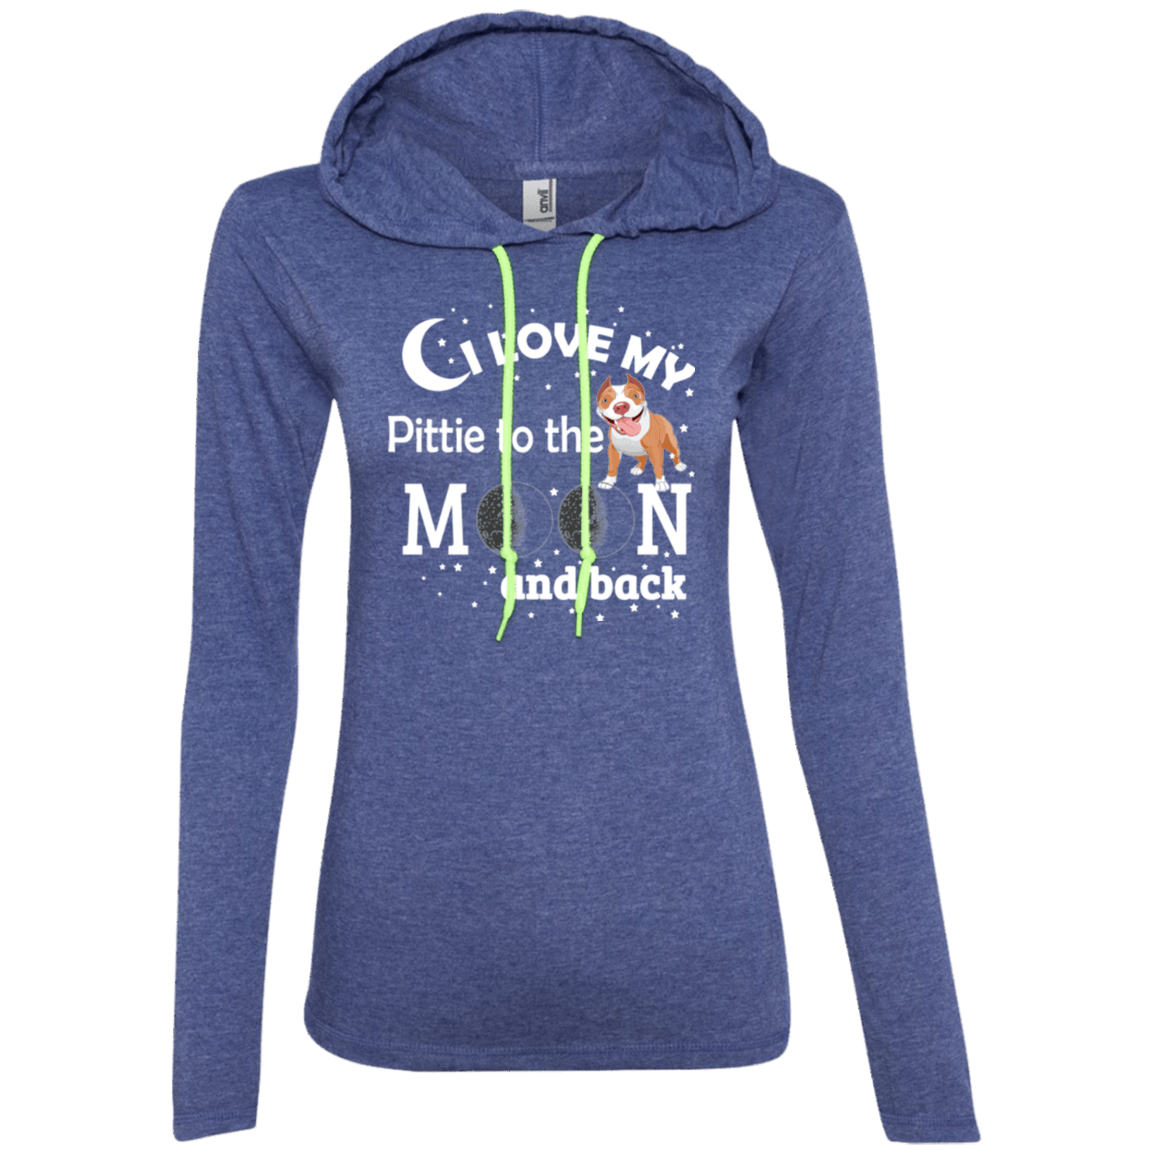 I Love My Pittie - 887L Anvil Ladies' LS T-Shirt Hoodie Heather Blue/Neon Yellow Small - Little Pit Shop